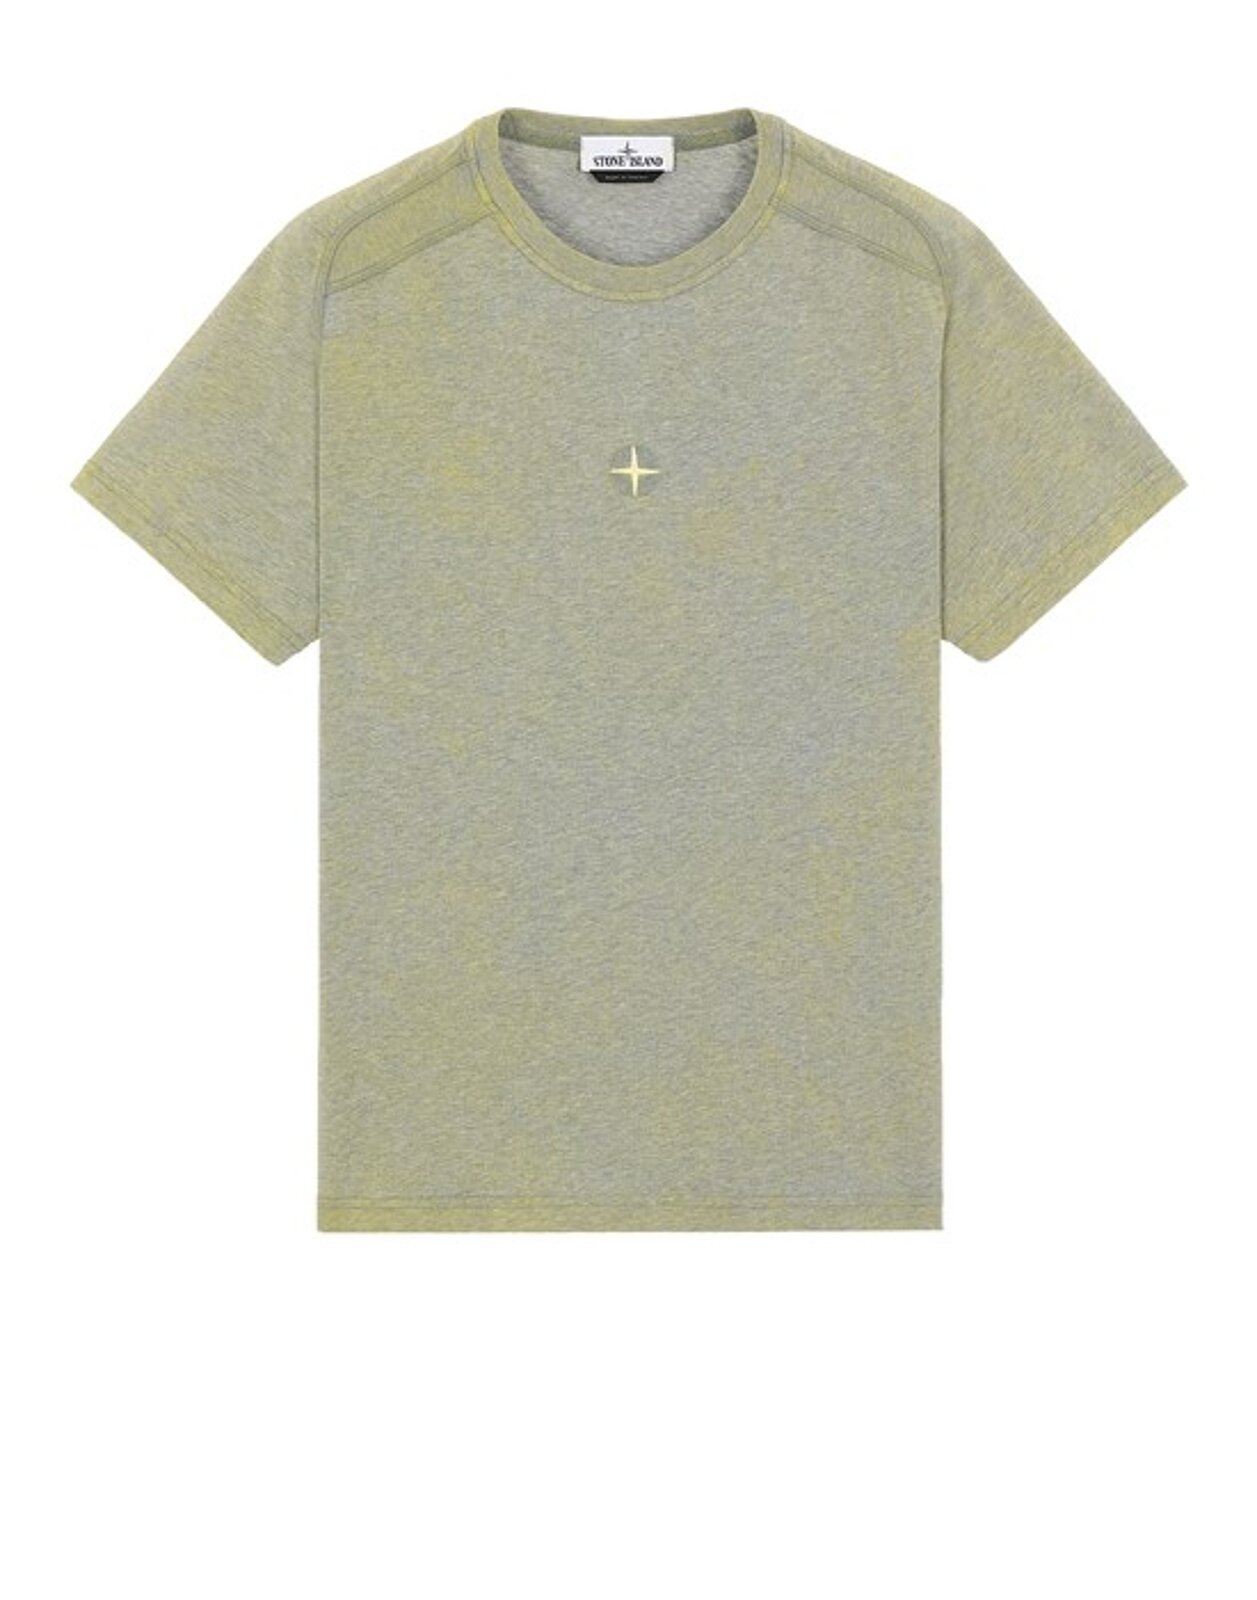 22993 Dust Colour Treatment - Stone Island